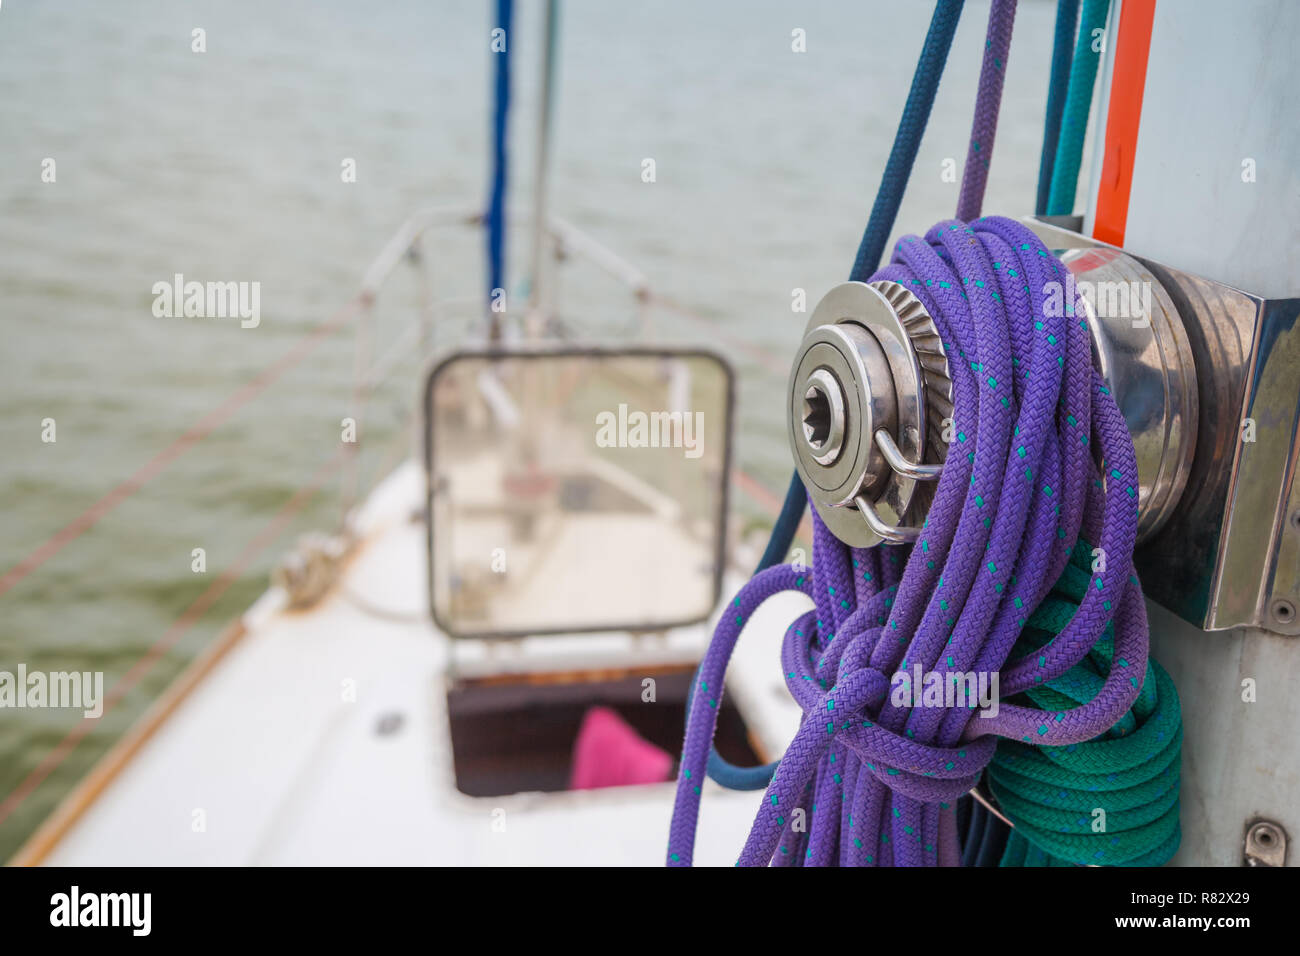 Winch mounted on the mast with ropes wound around it against the background of an open hatch in front of the yacht - Stock Image